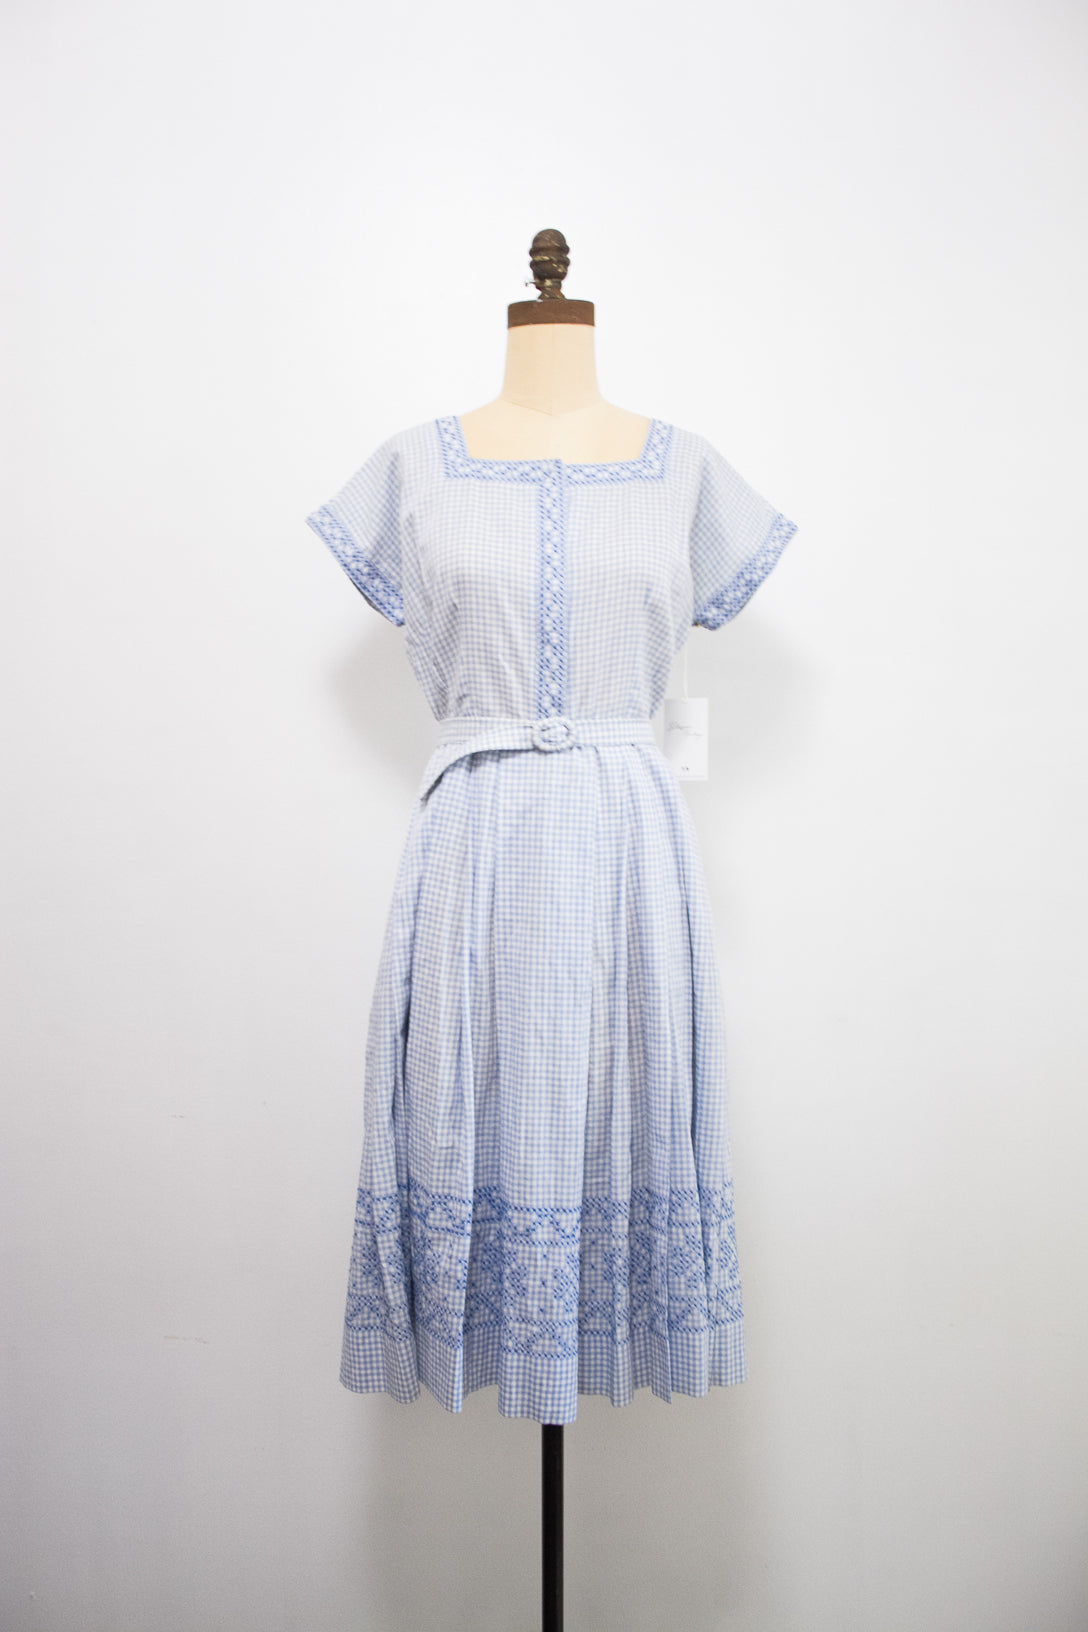 1950s Gingham Periwinkle Cotton Dress